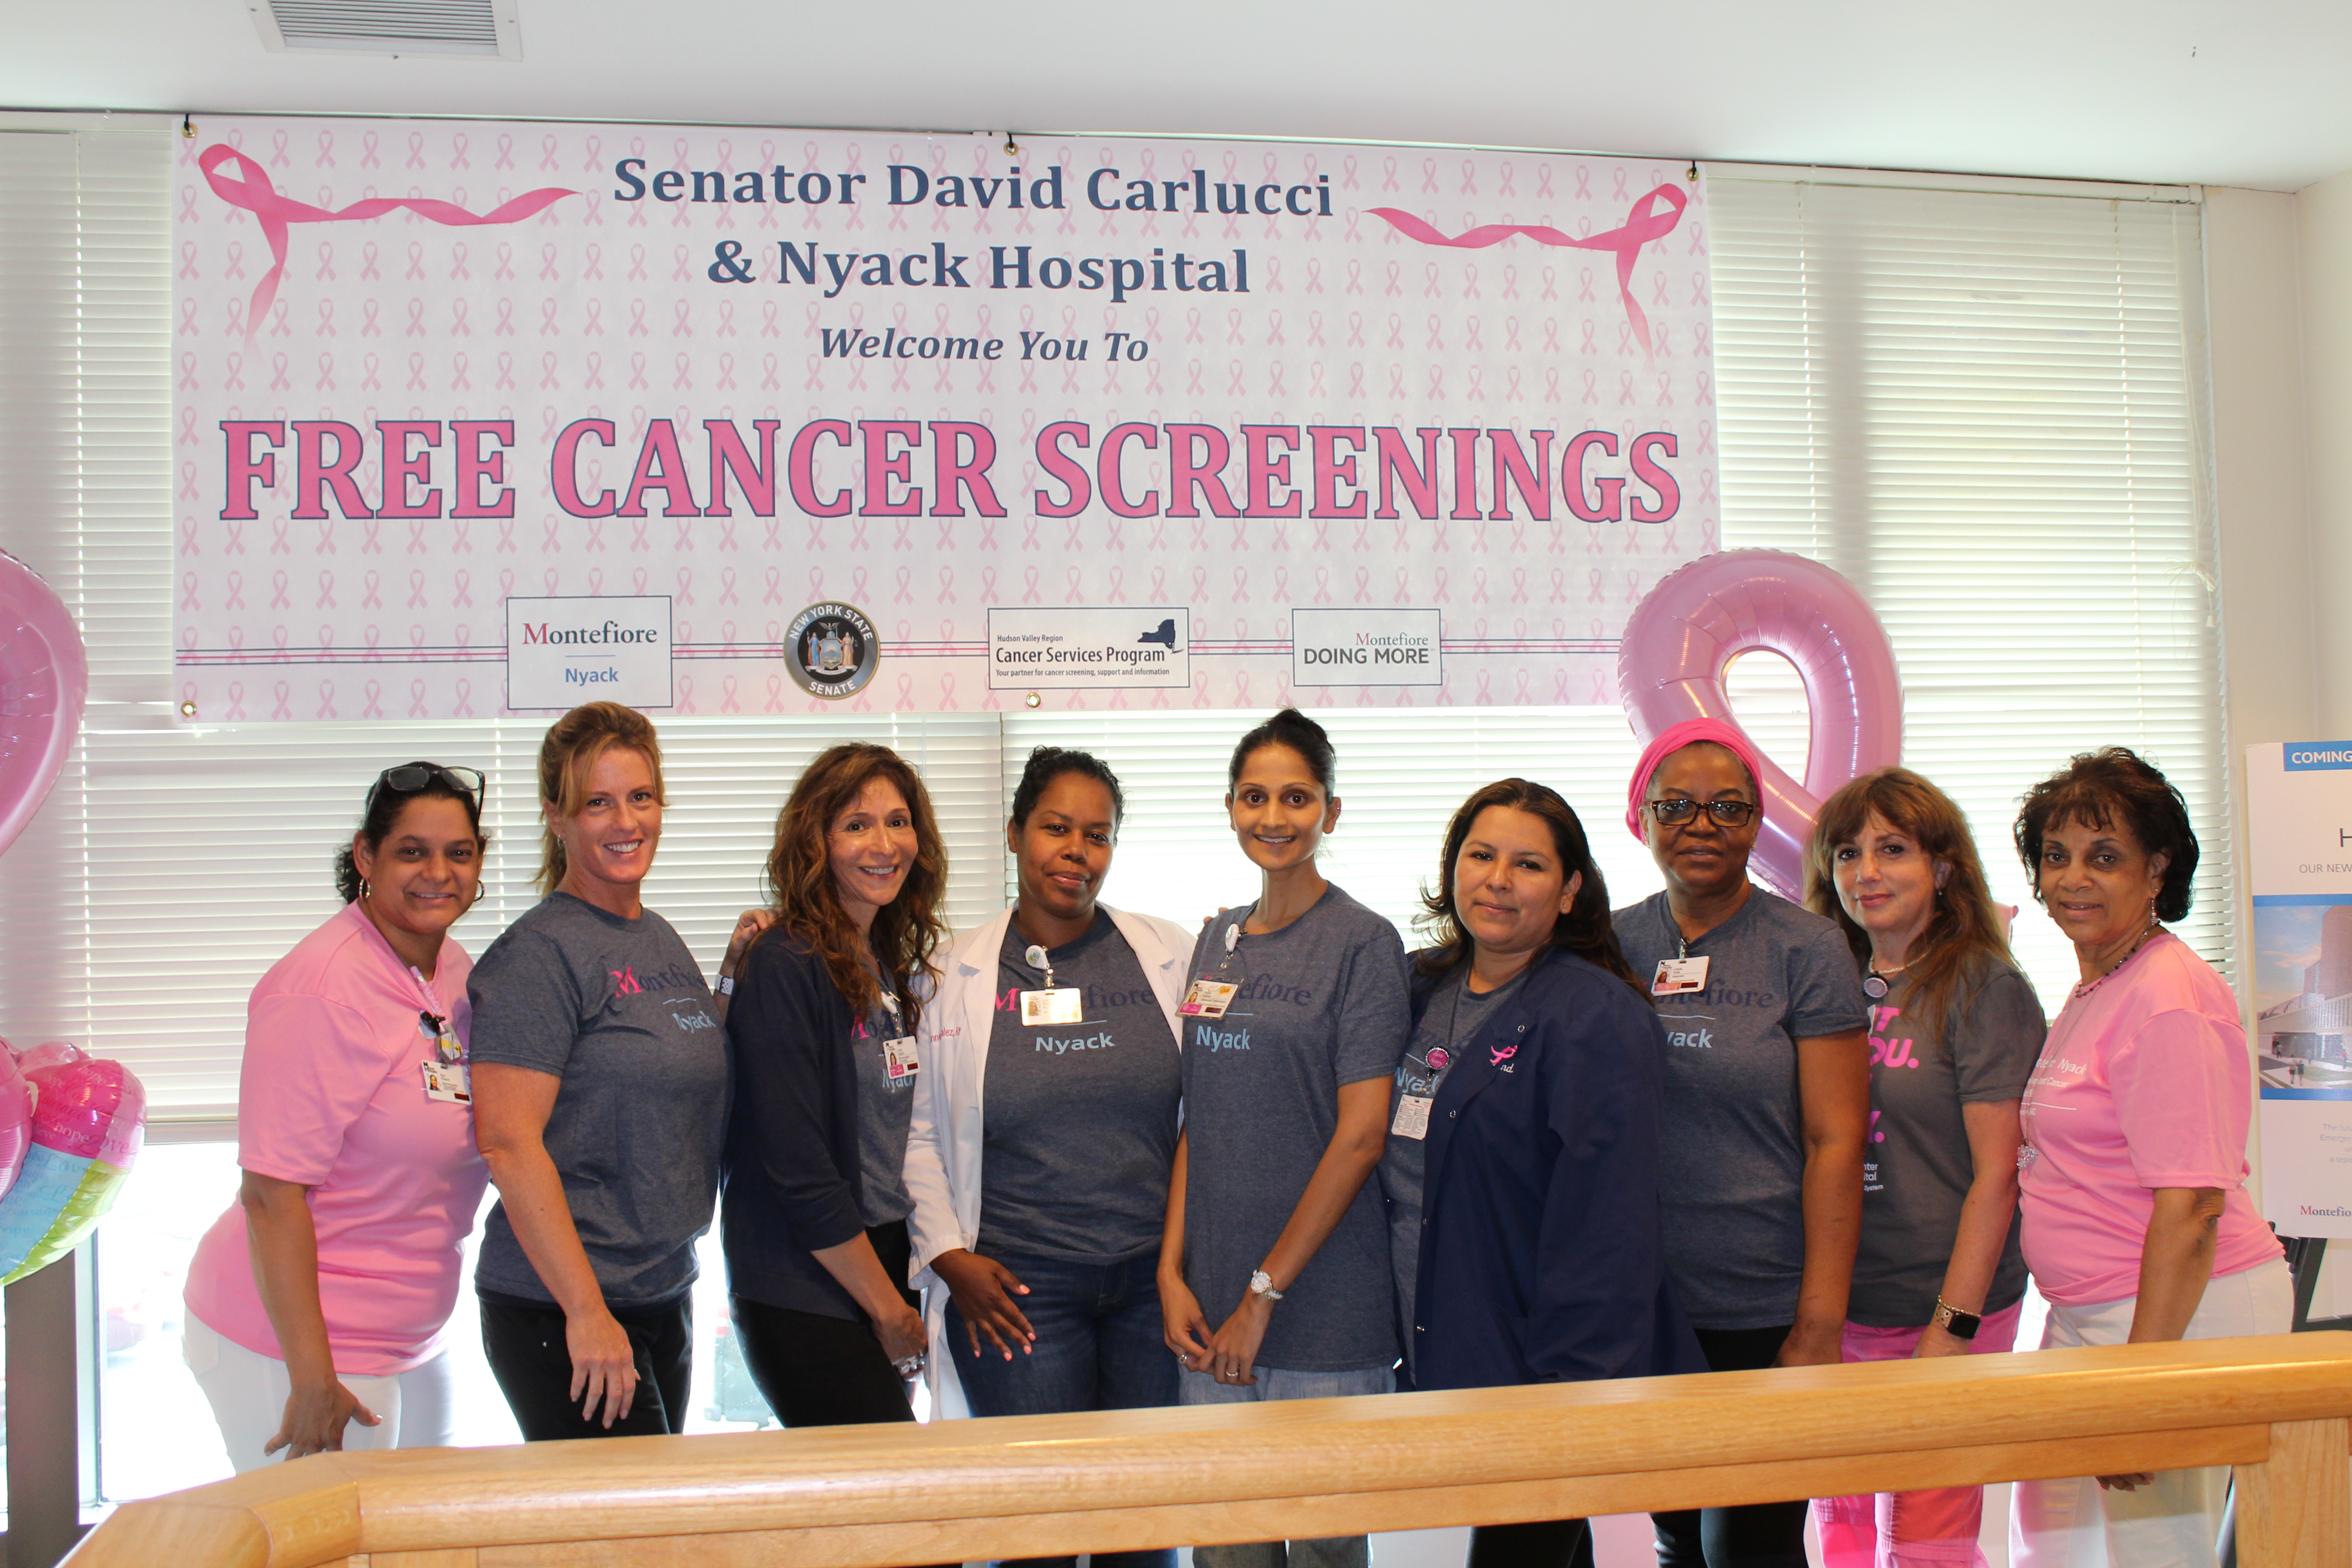 Montefiore Nyack Hospital Offers Free Breast and Cervical Cancer Screenings For Underinsured or Uninsured Women in Rockland County